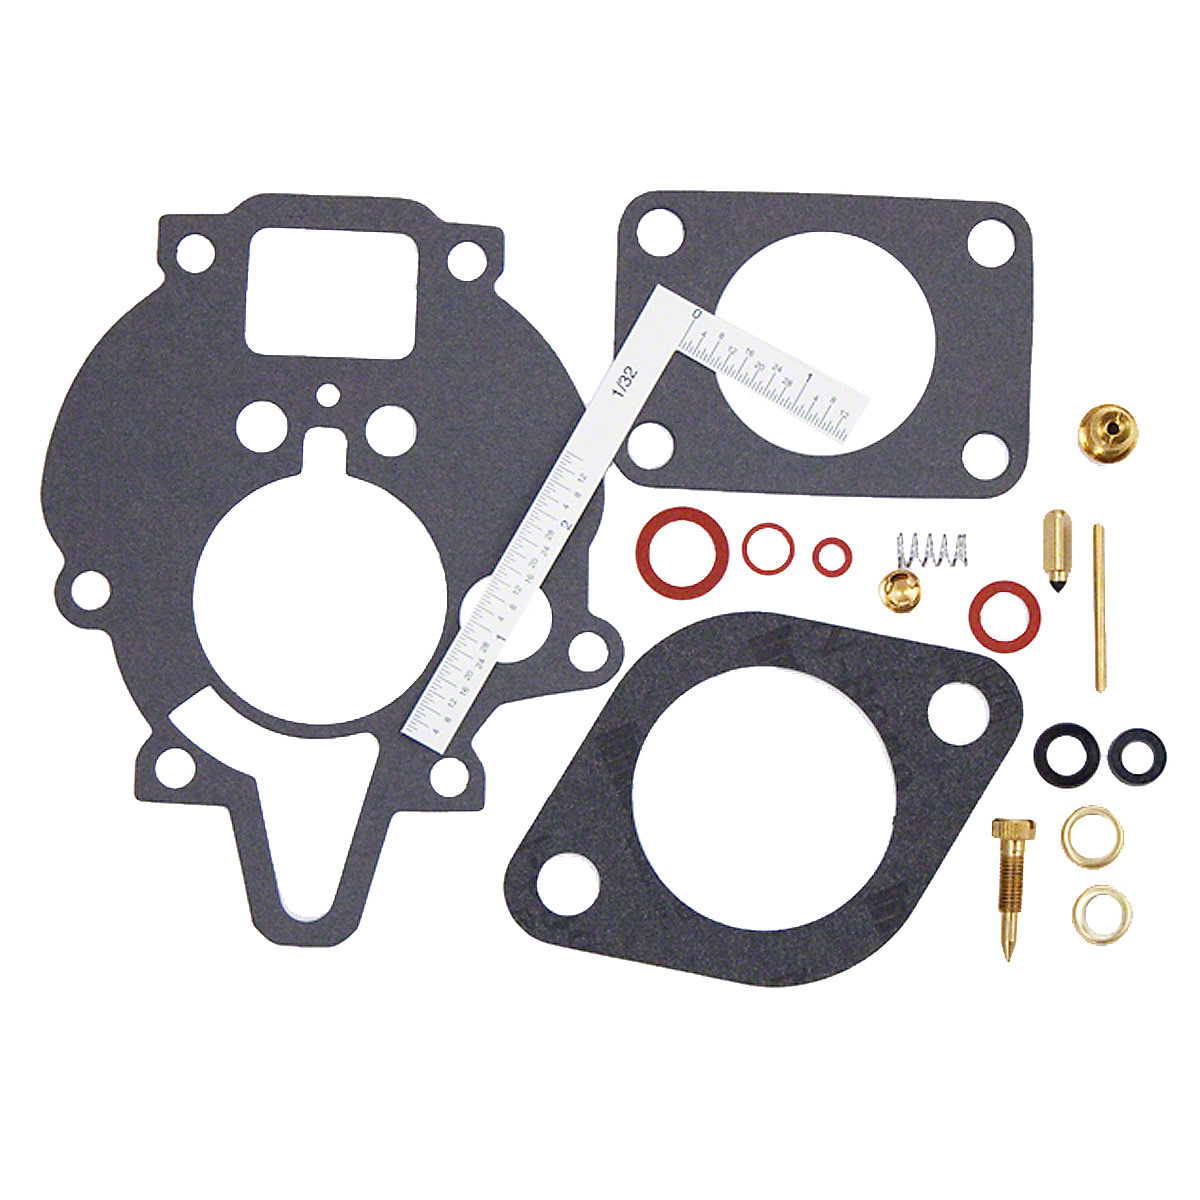 John deere abc1306 economy carburetor repair kit zenith